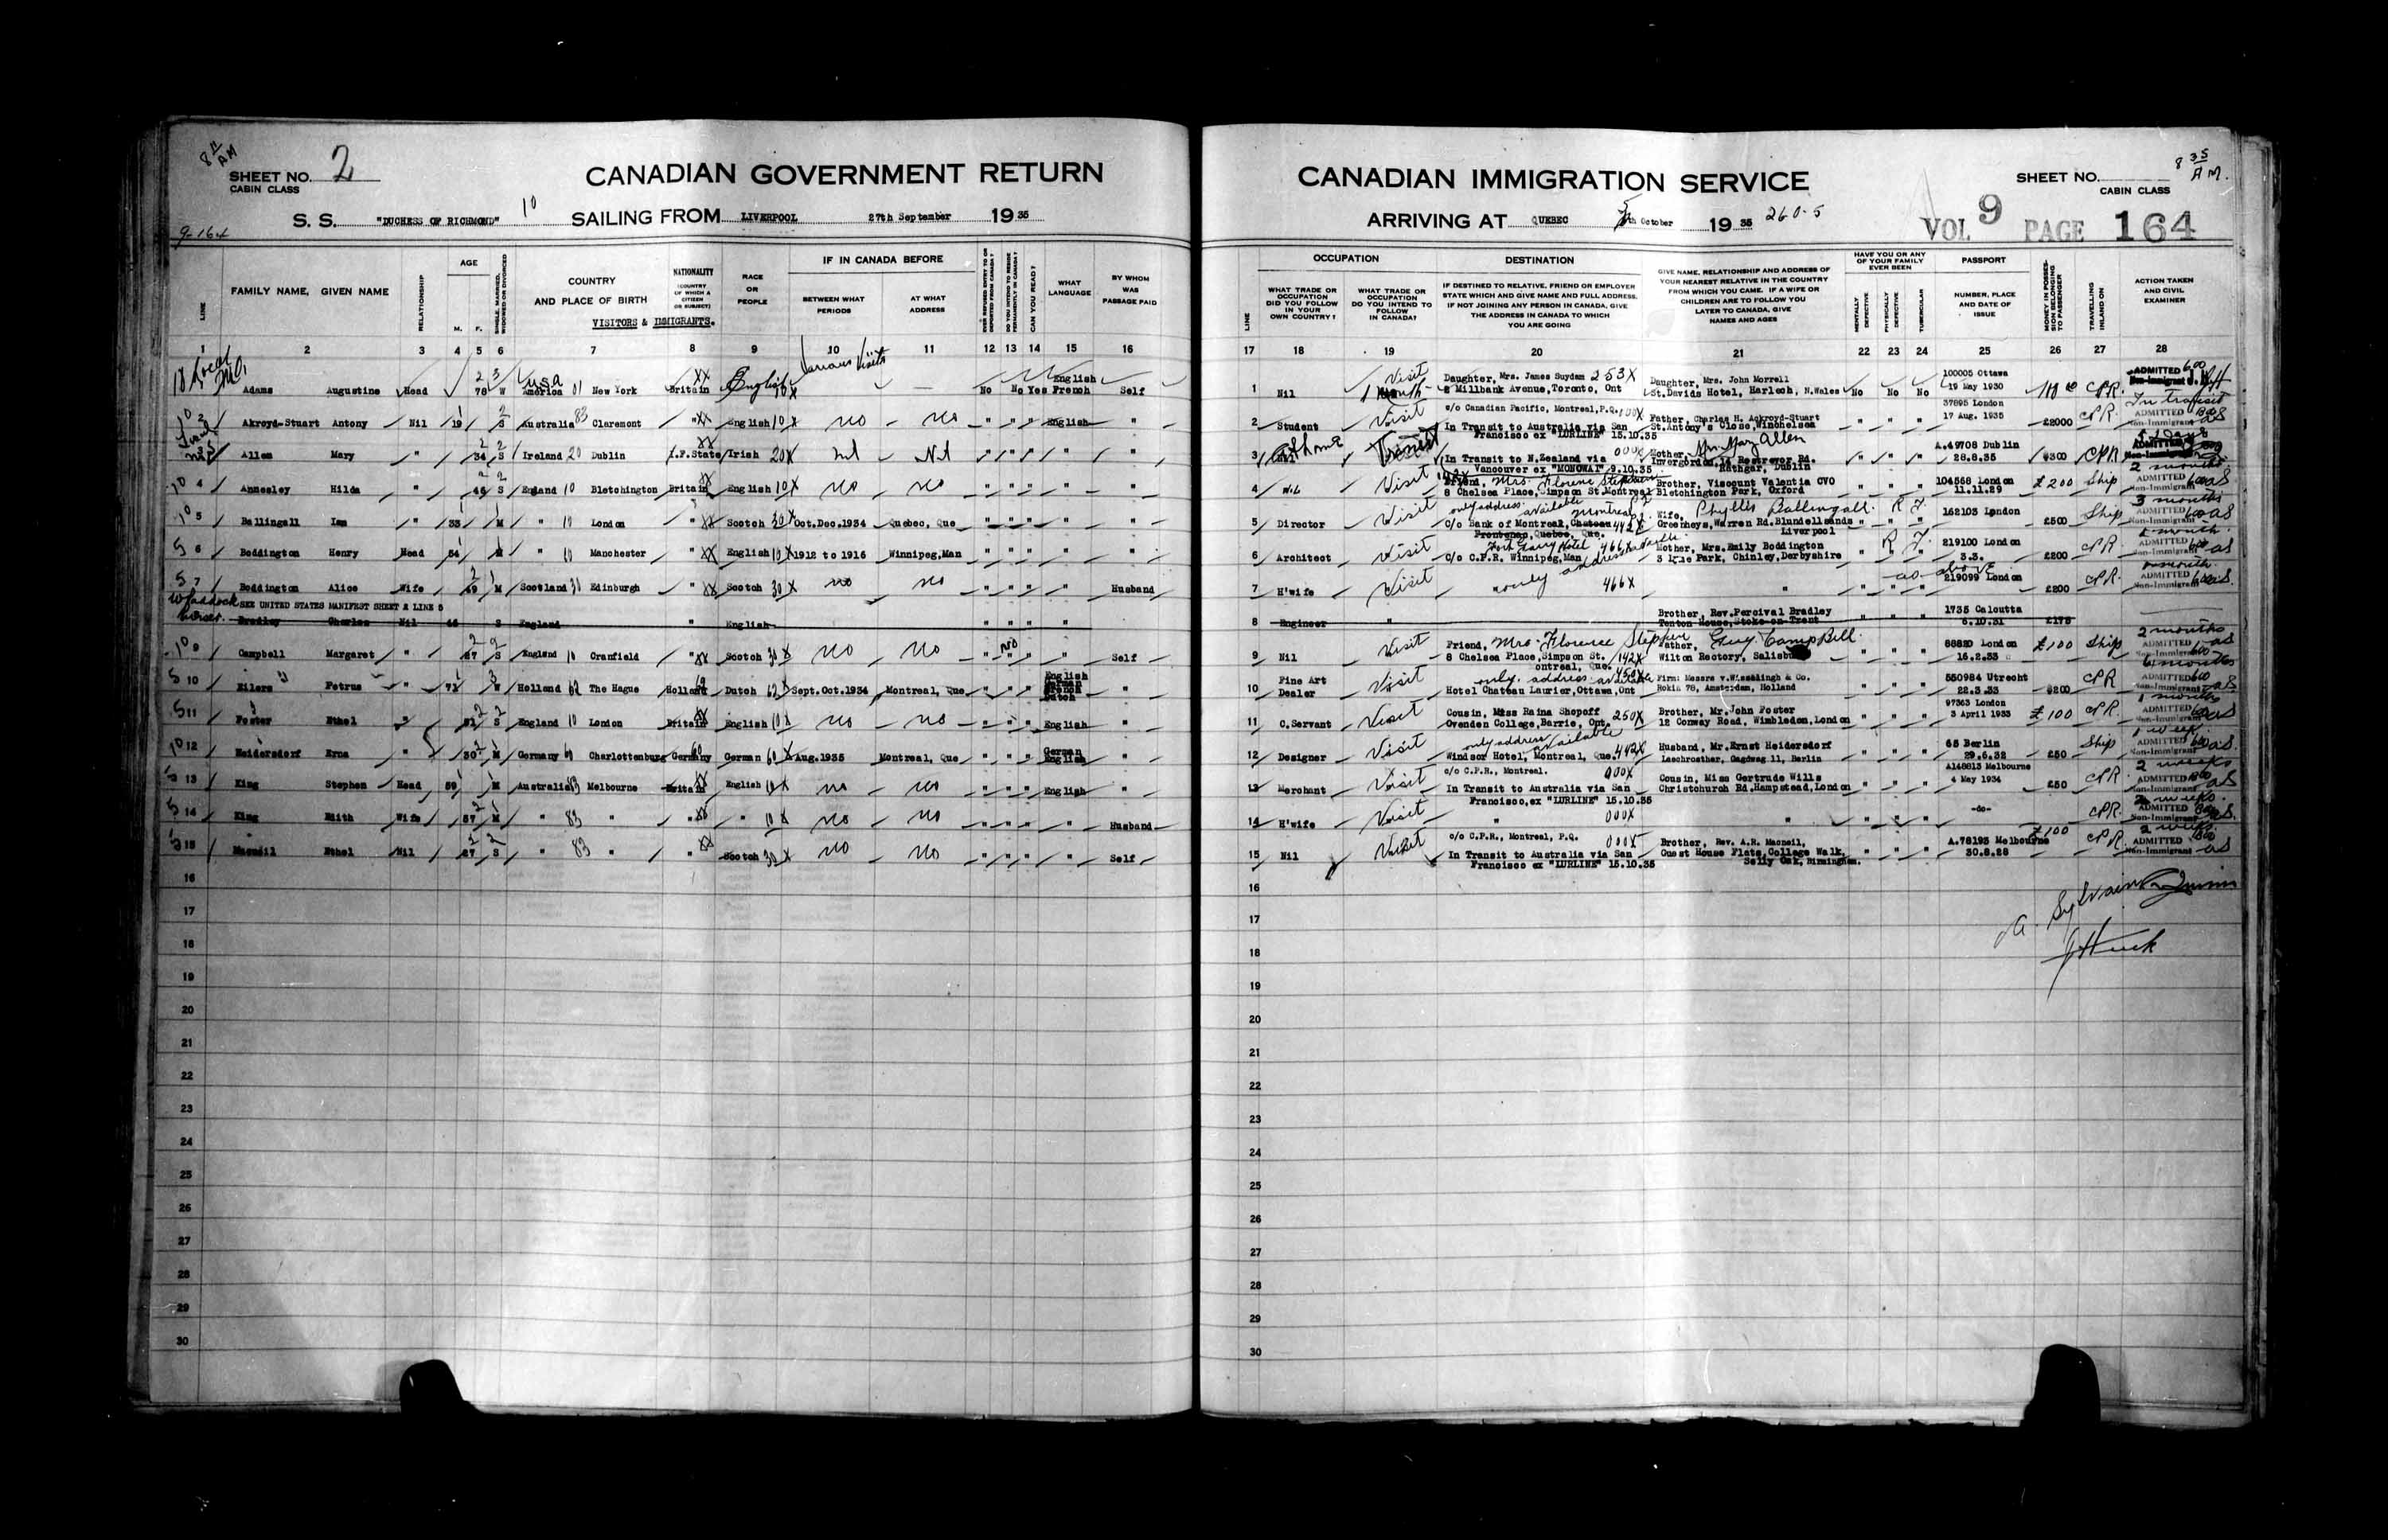 Title: Passenger Lists: Quebec City (1925-1935) - Mikan Number: 134839 - Microform: t-14792